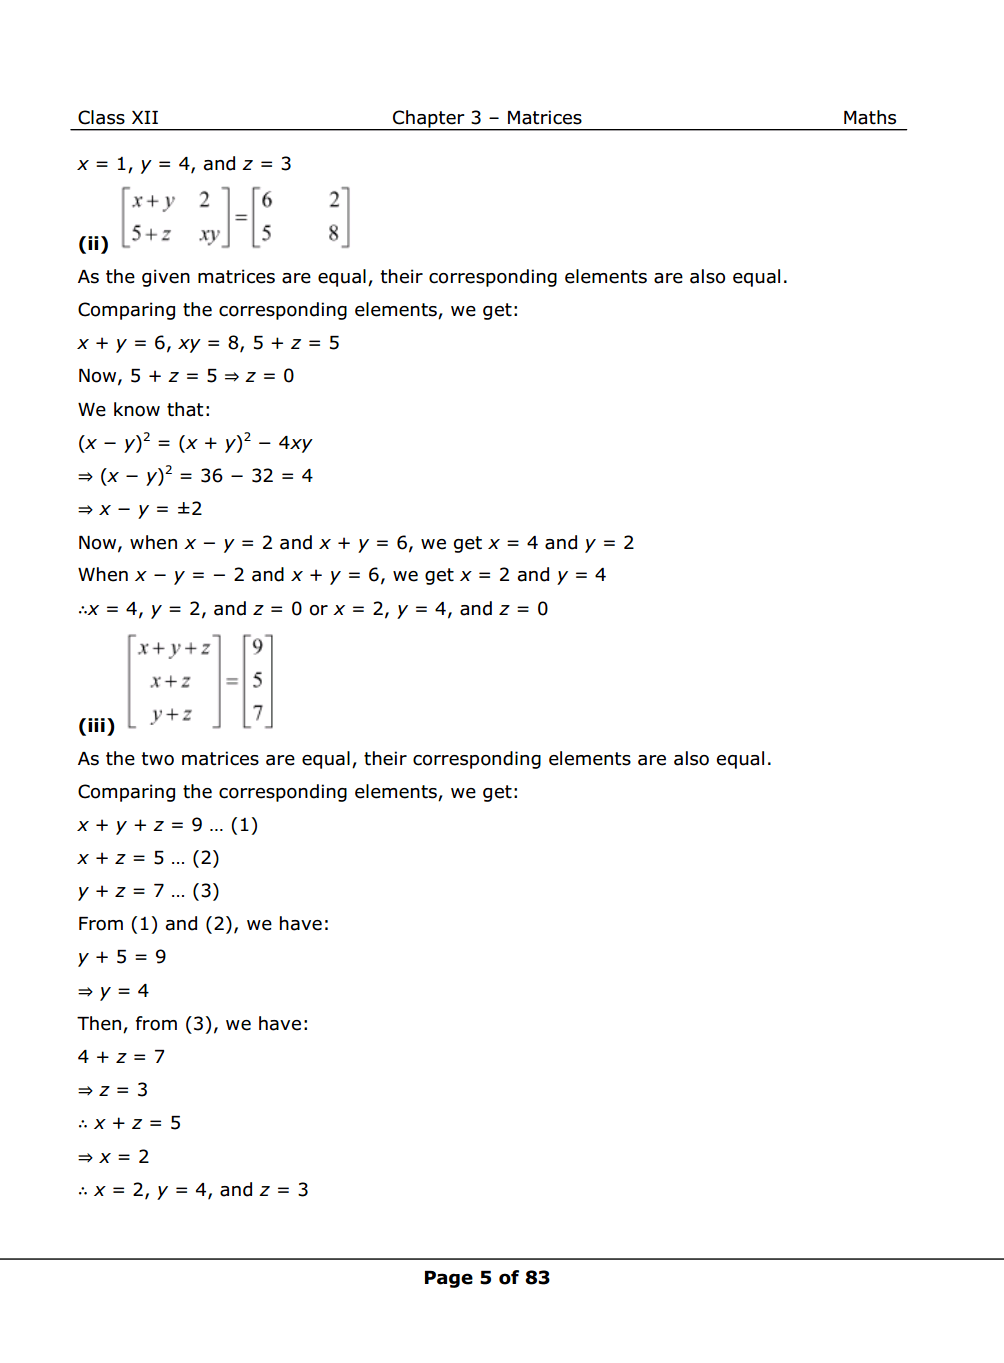 NCERT Solutions for Class 12 Maths chapter 3 Image 5